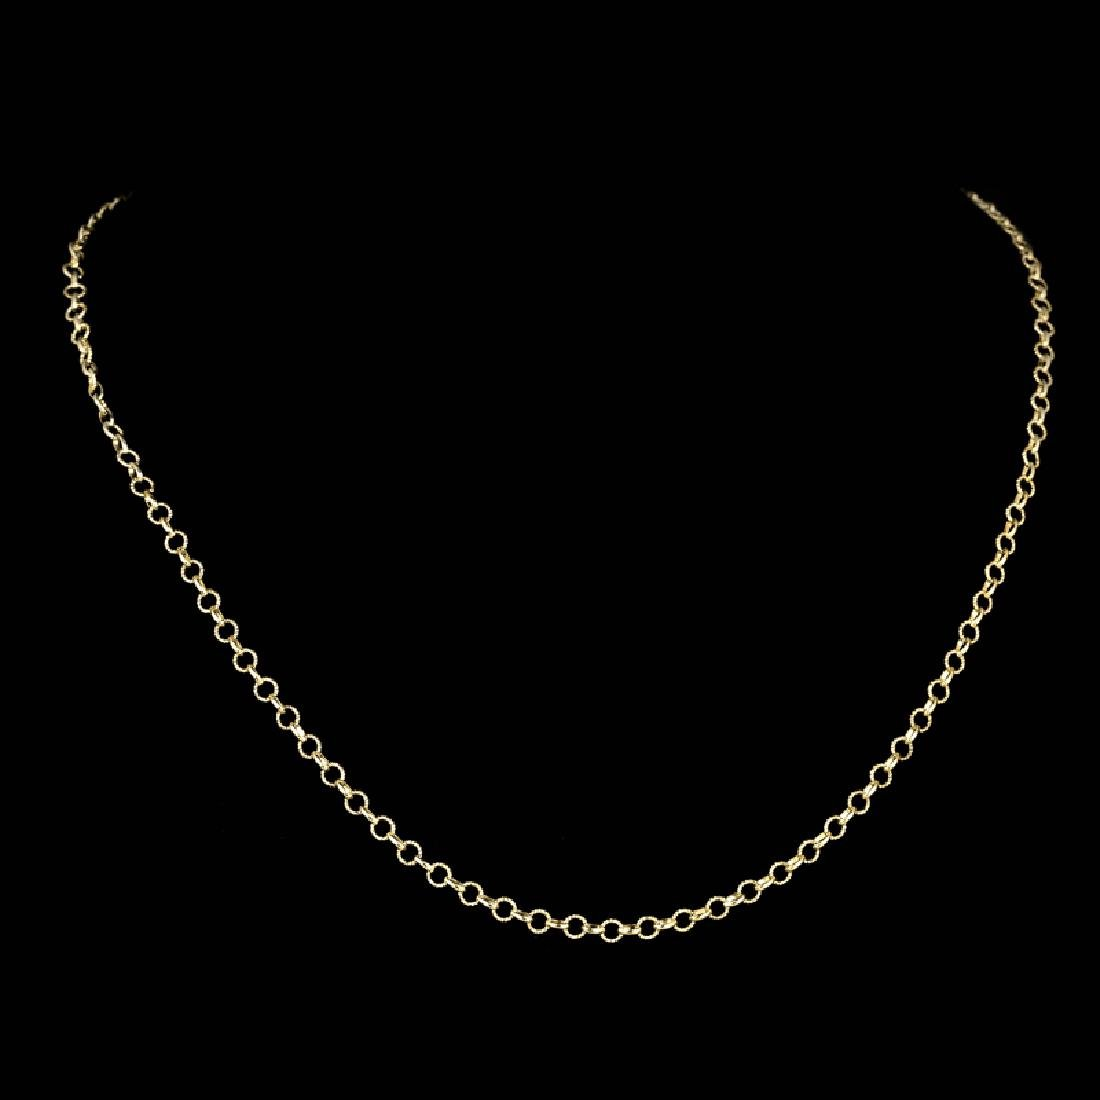 *Fine Jewelry 14KT Gold, 4.8GR, 18'' Twisted Round And